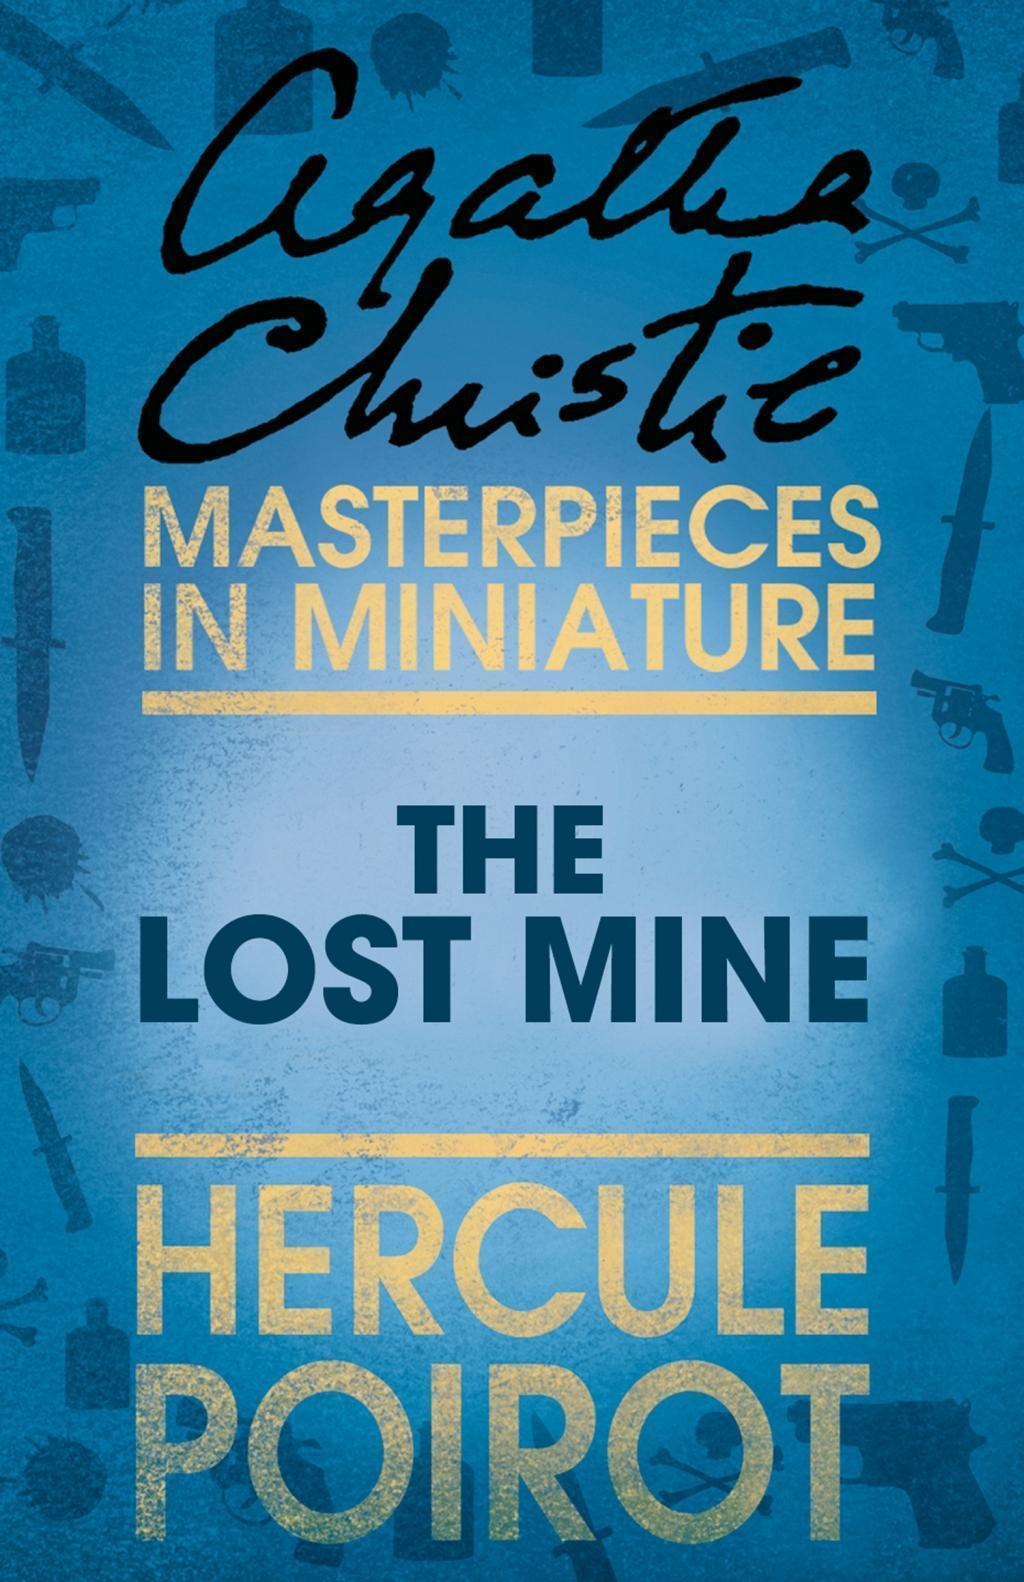 The Lost Mine: A Hercule Poirot Short Story